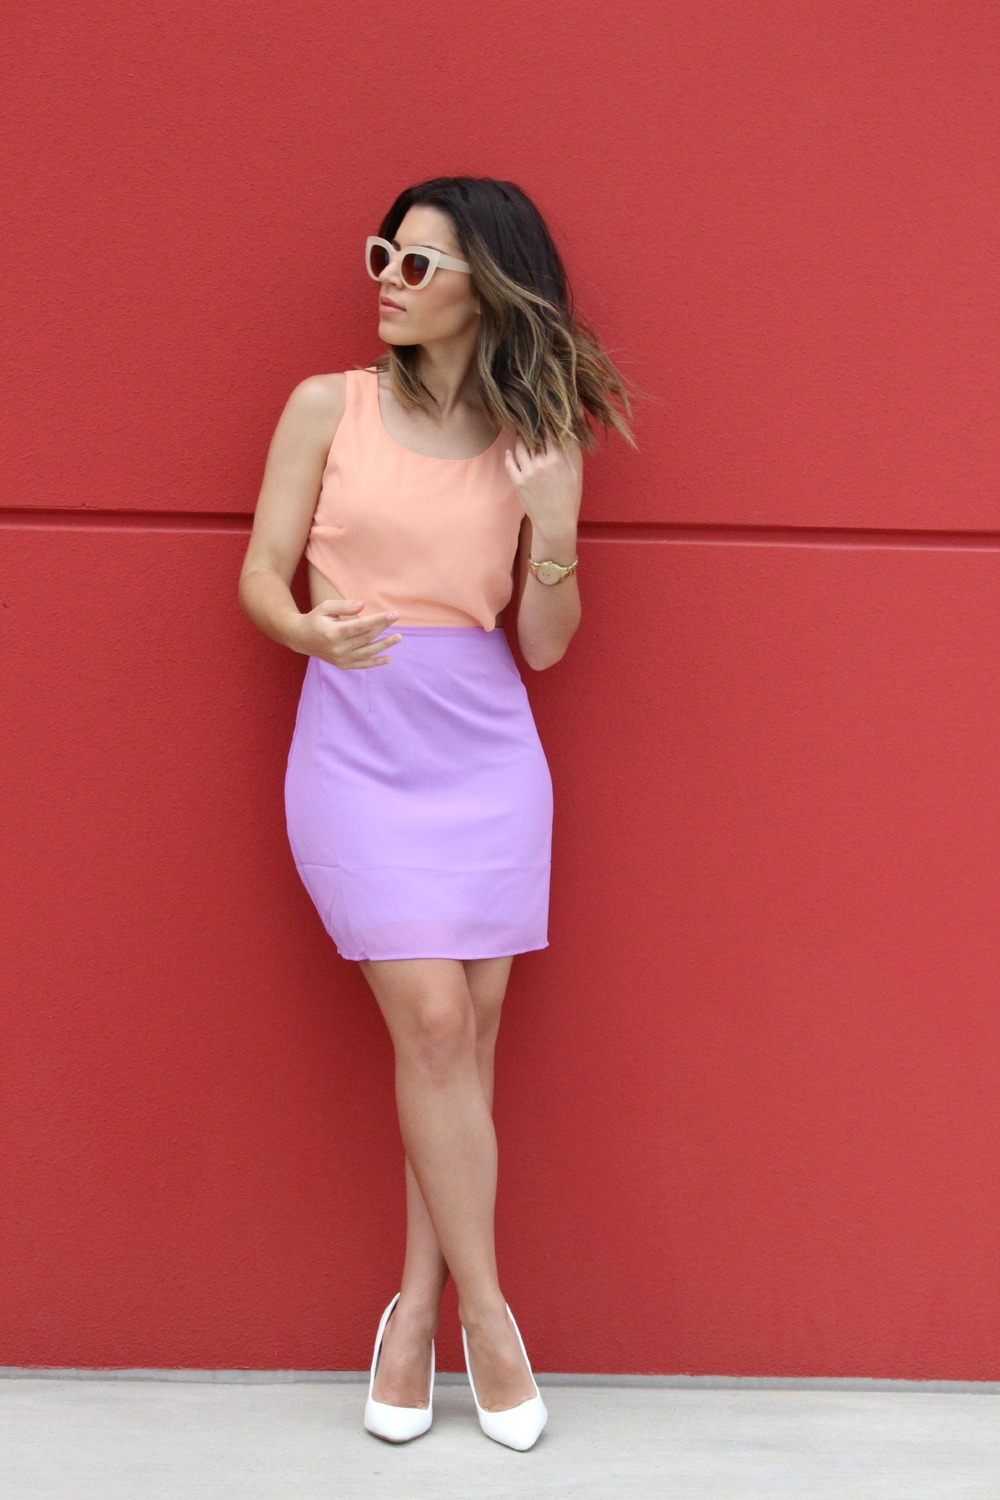 Dress - ShopTobi// Shoes - DSW//Watch - Fossil//Sunnies - Sunglasspot.com